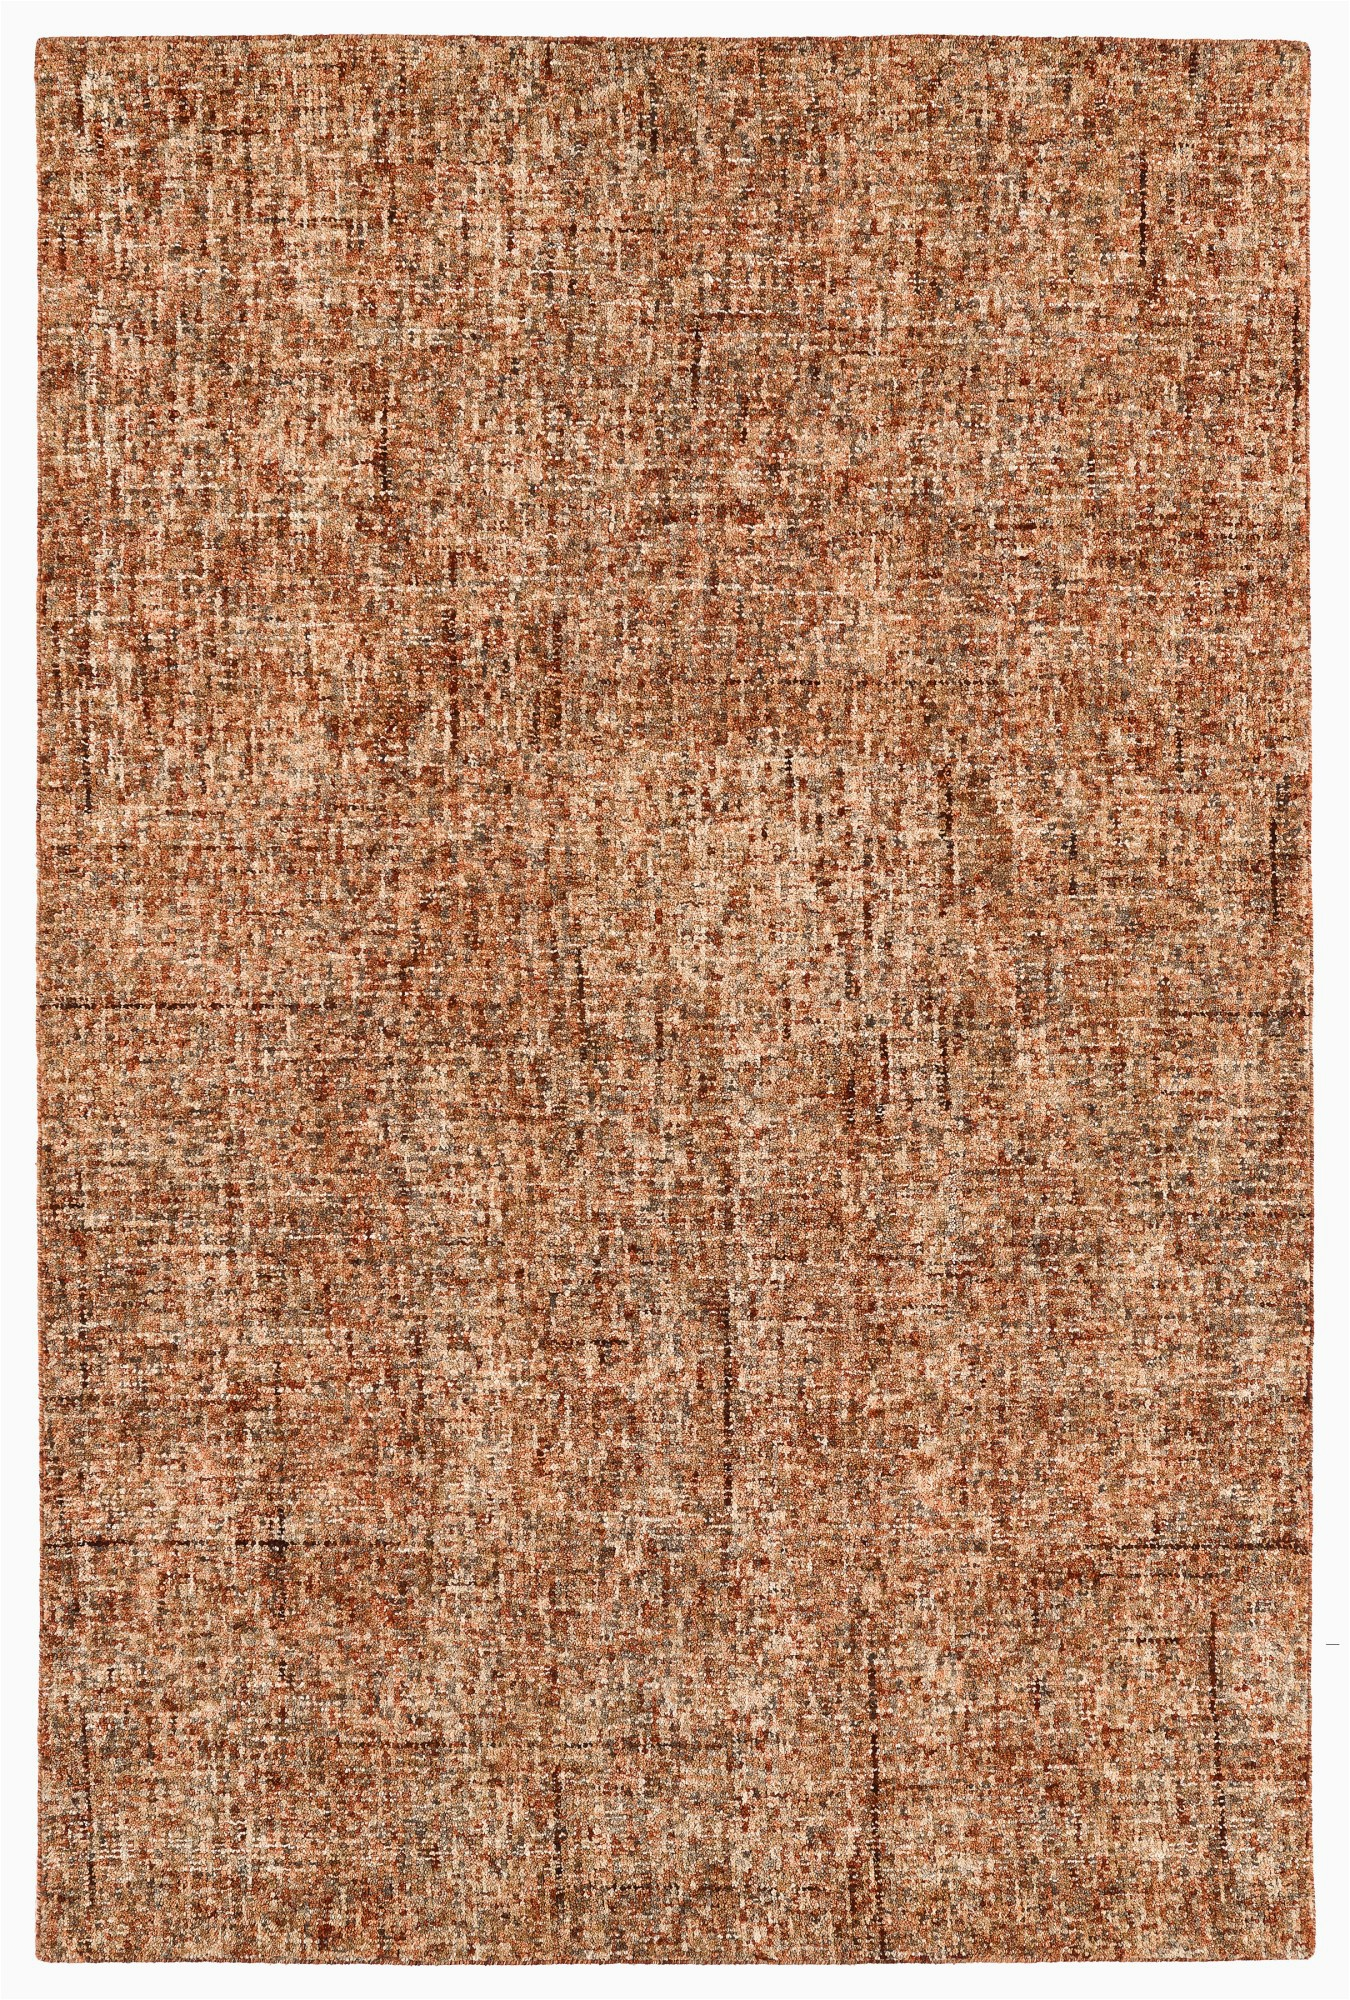 Macy S Dalyn area Rug Dalyn Calisa Calisa area Rugs